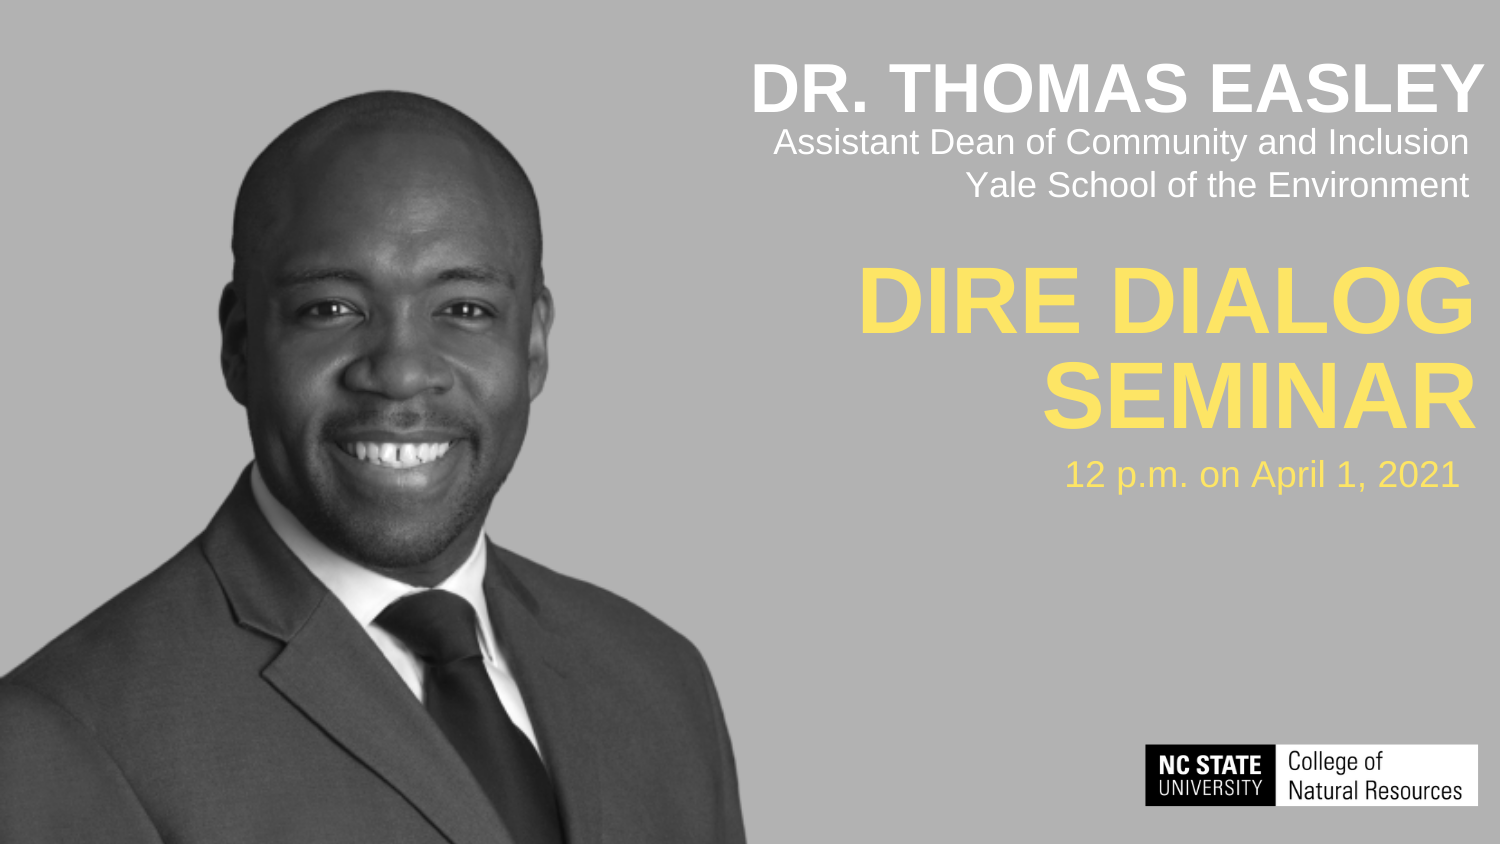 Dr. Thomas Easley - Yale University's Thomas Easley to Keynote Diversity Discussion - College of Natural Resources News NC State University